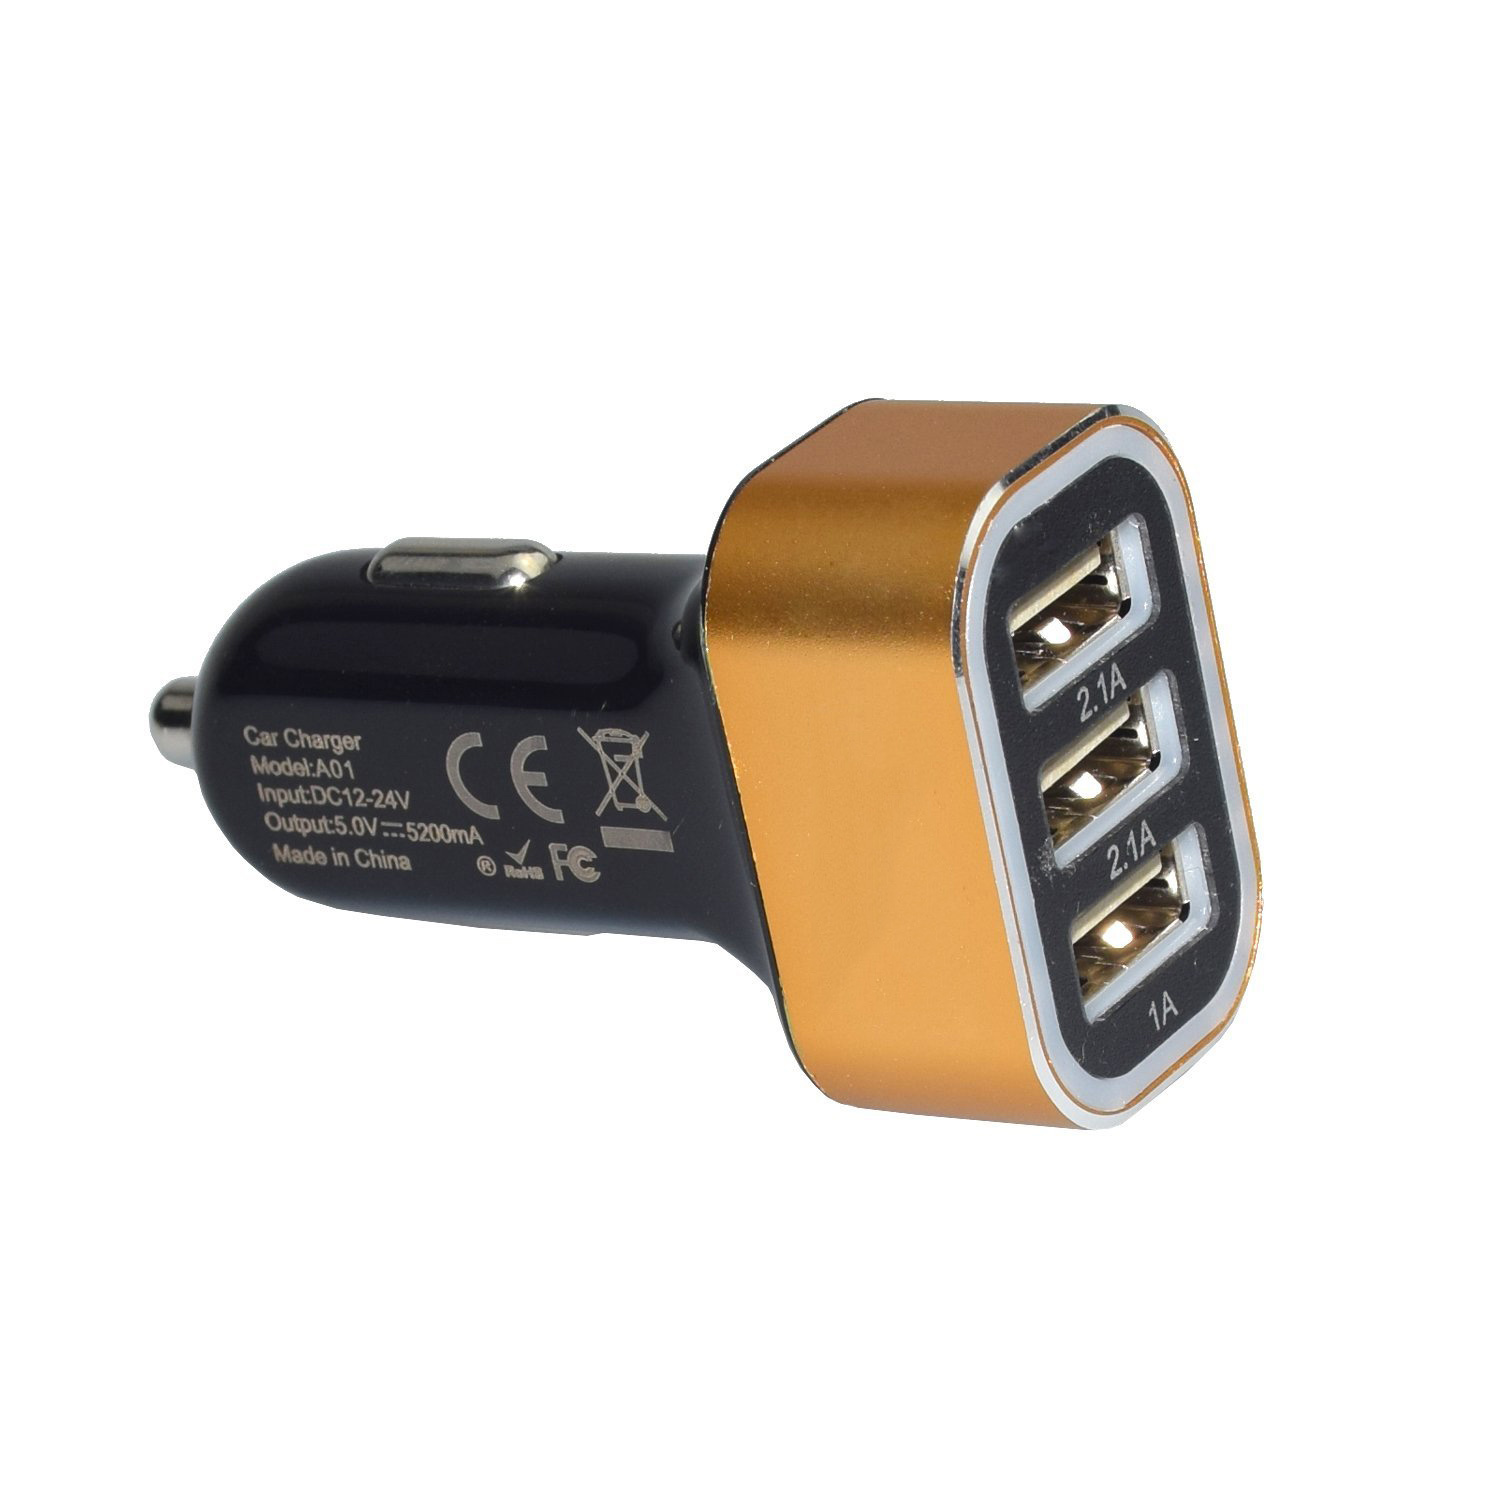 Portable 5V 2.1A USB Mobile Phone Car Charger